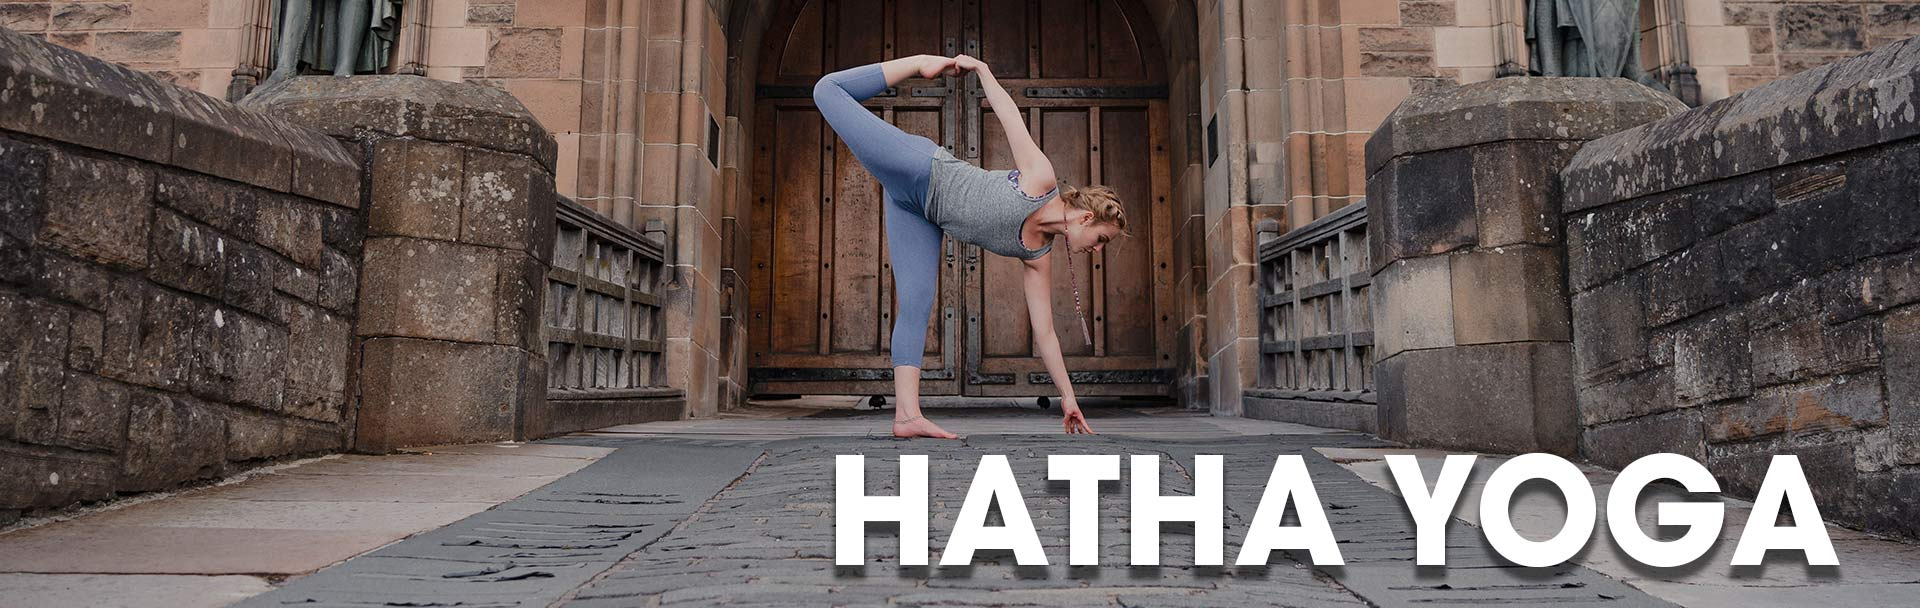 Sophie Obrien teaches hatha yoga at the sir arthur conan doyle centre via zoom